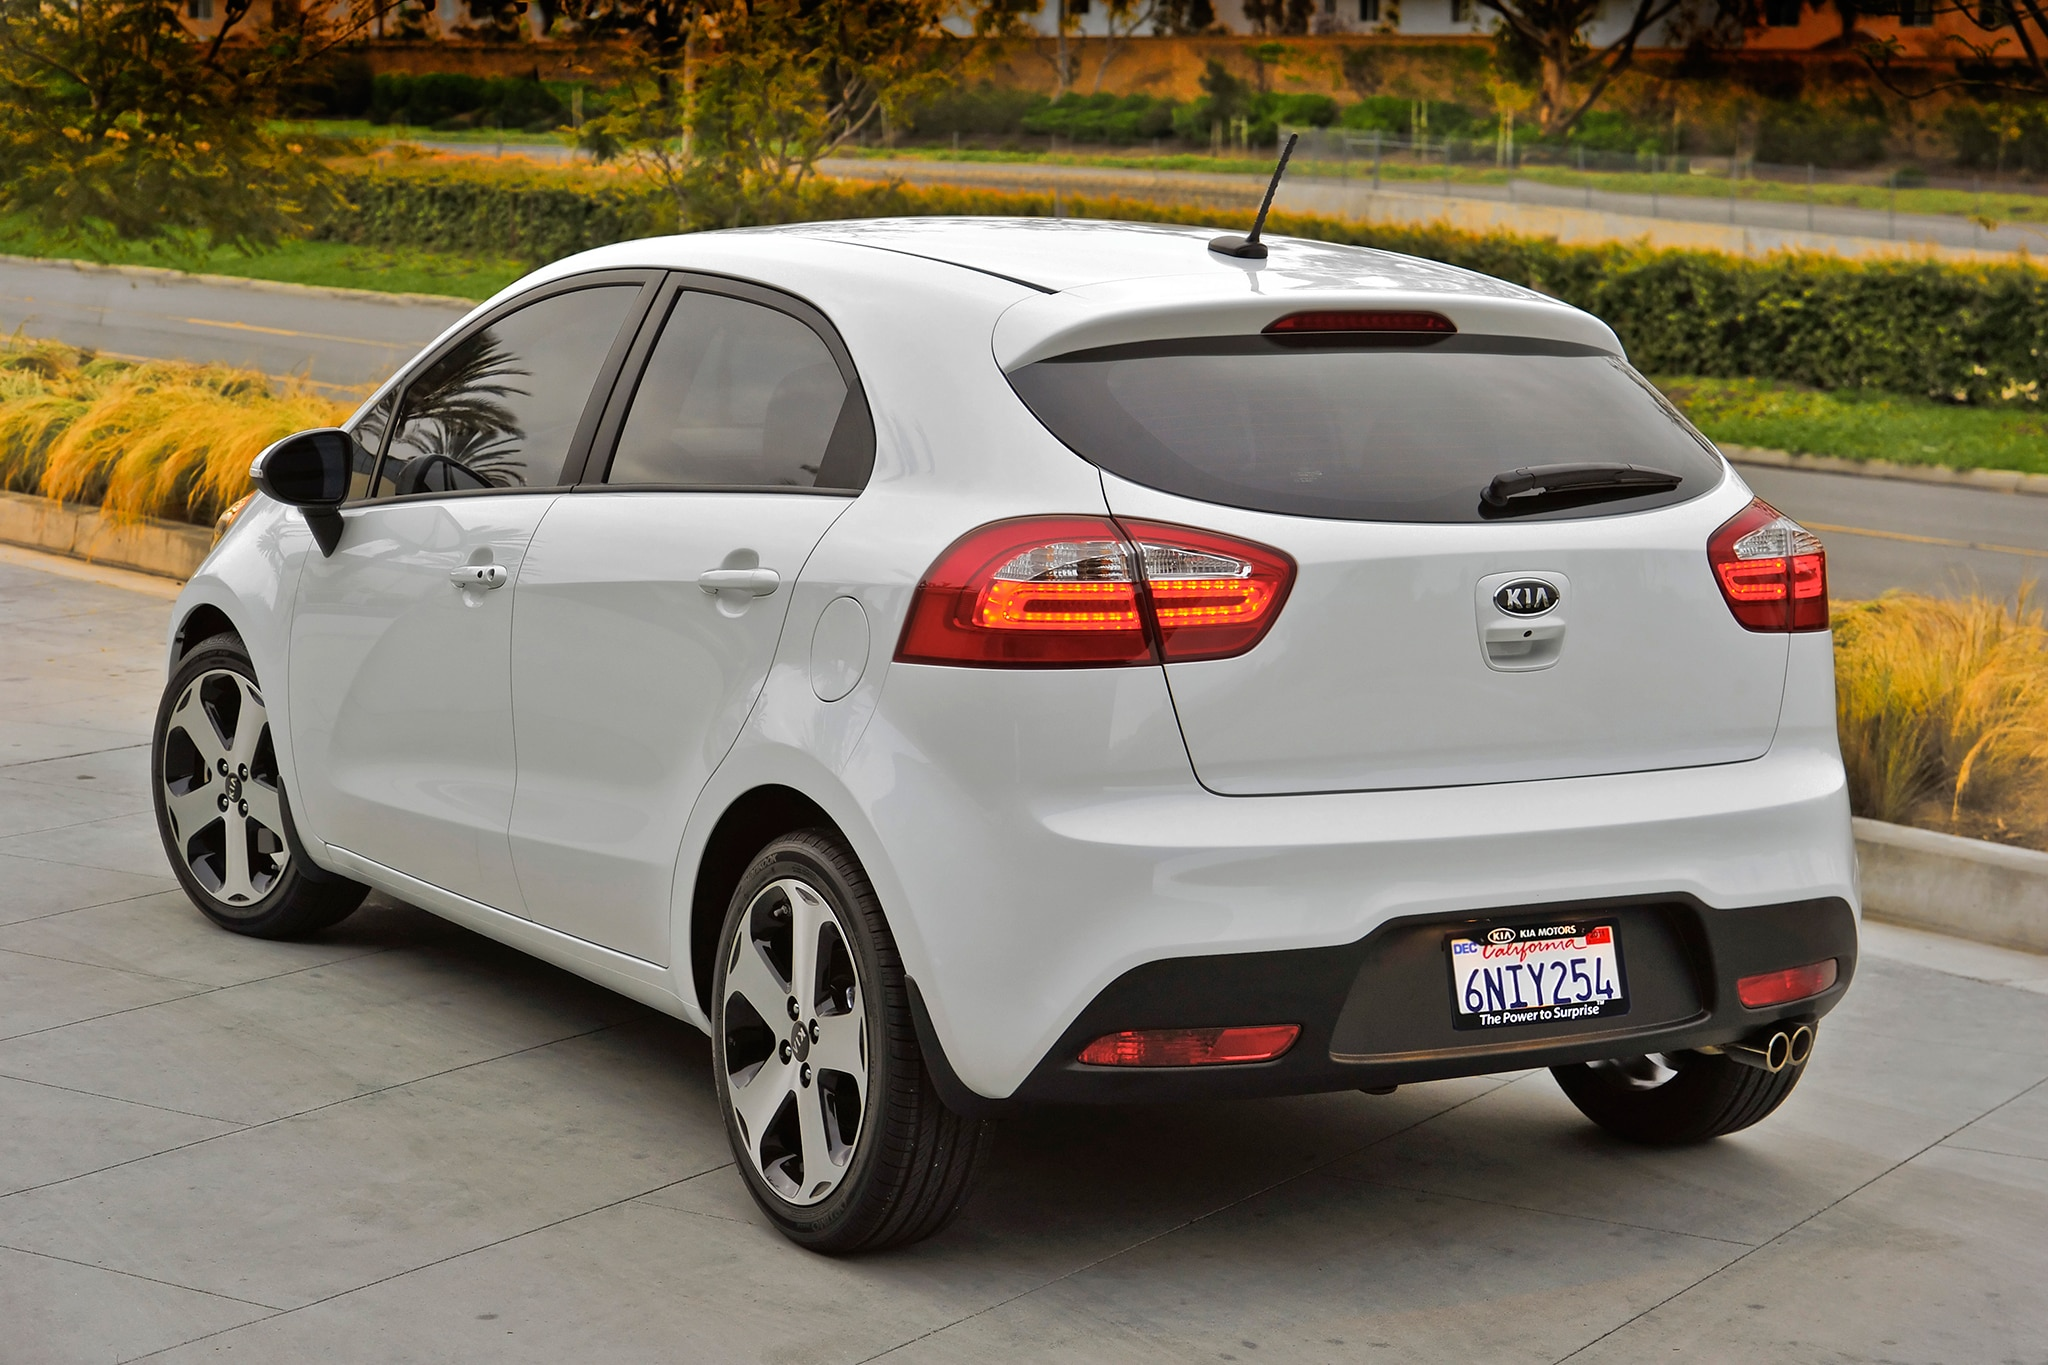 Kia building limited run of 2013 rio sx models with manual transmission 2013 kia rio5 582 fandeluxe Image collections